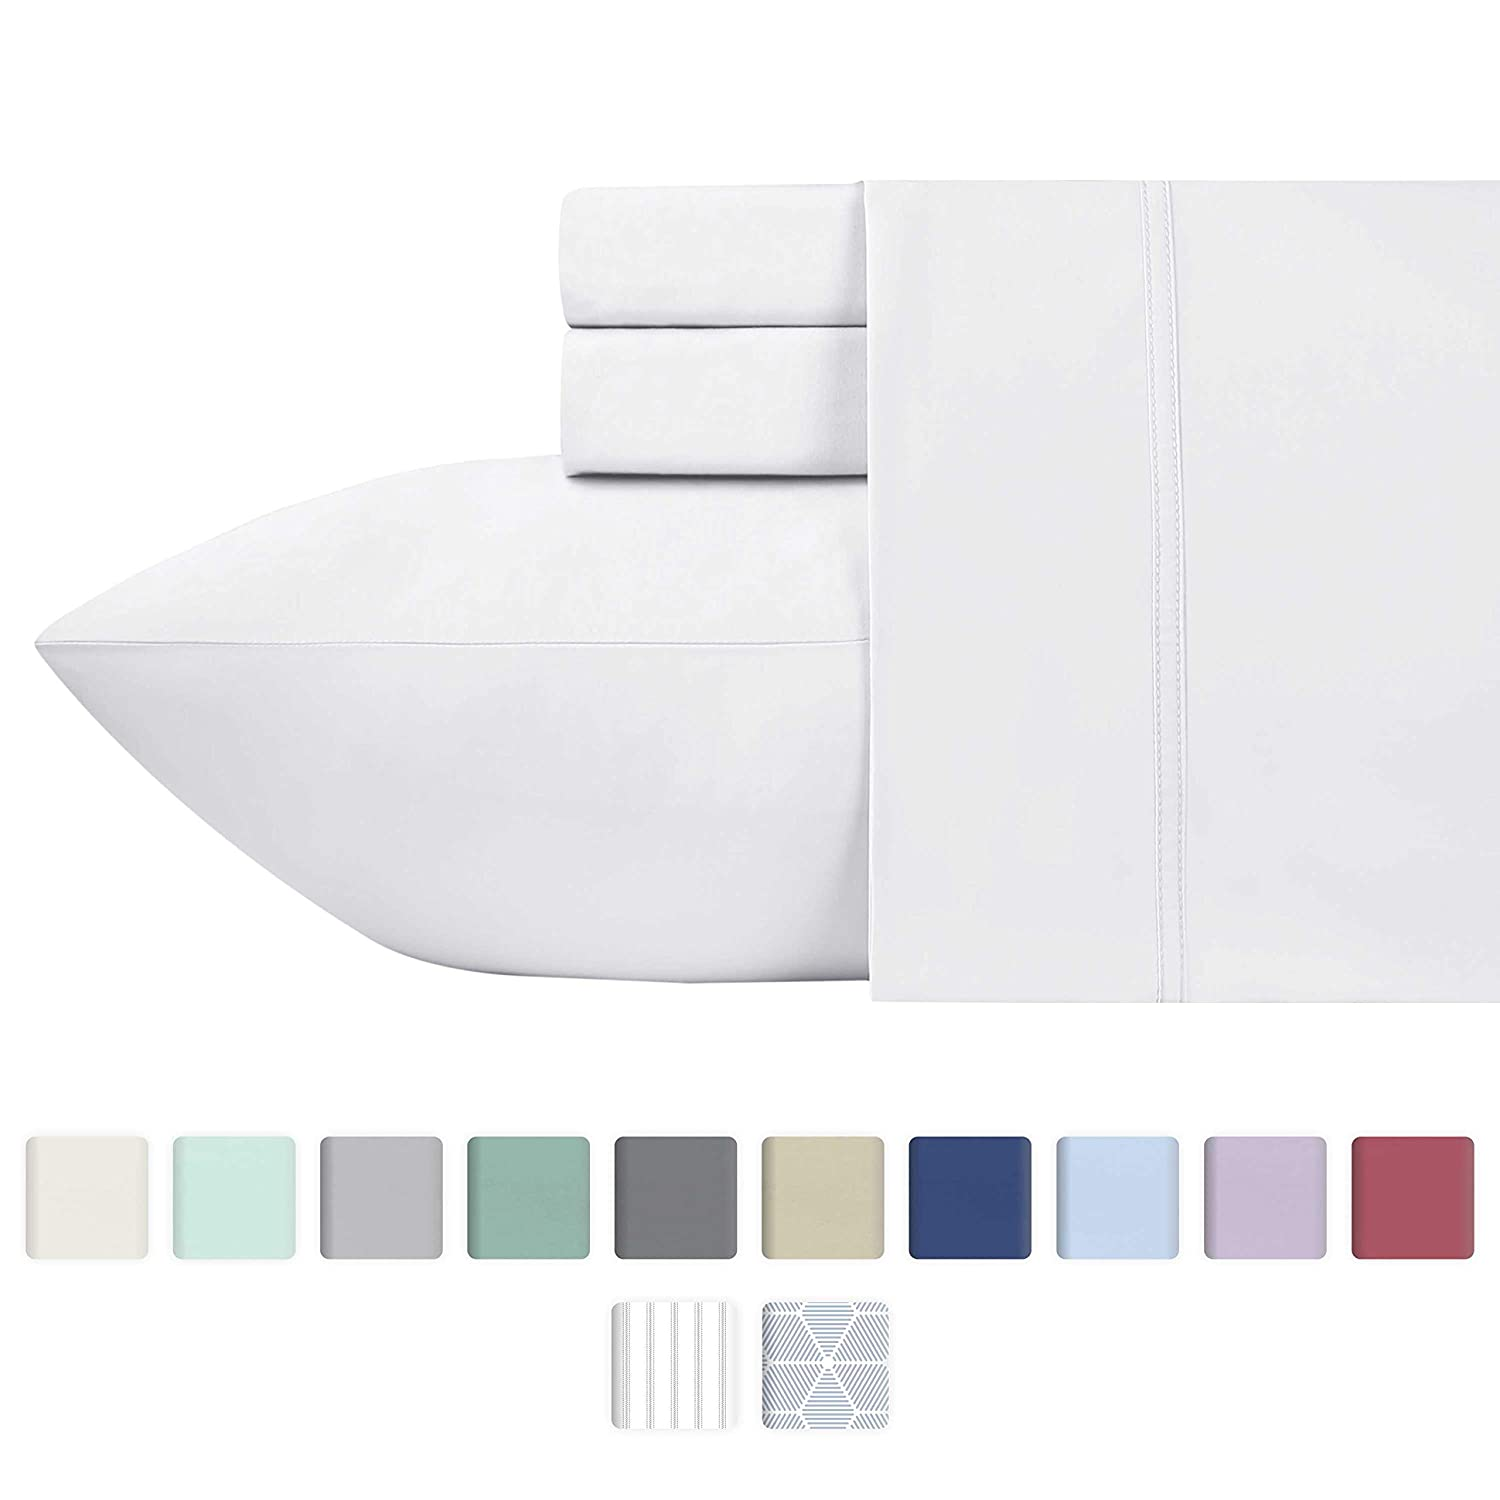 5* 400 Thread Count 100% Egyptian Cotton Fitted Sheet Flat Sheet All Uk Sizes Bright Luster Bed Linens & Sets